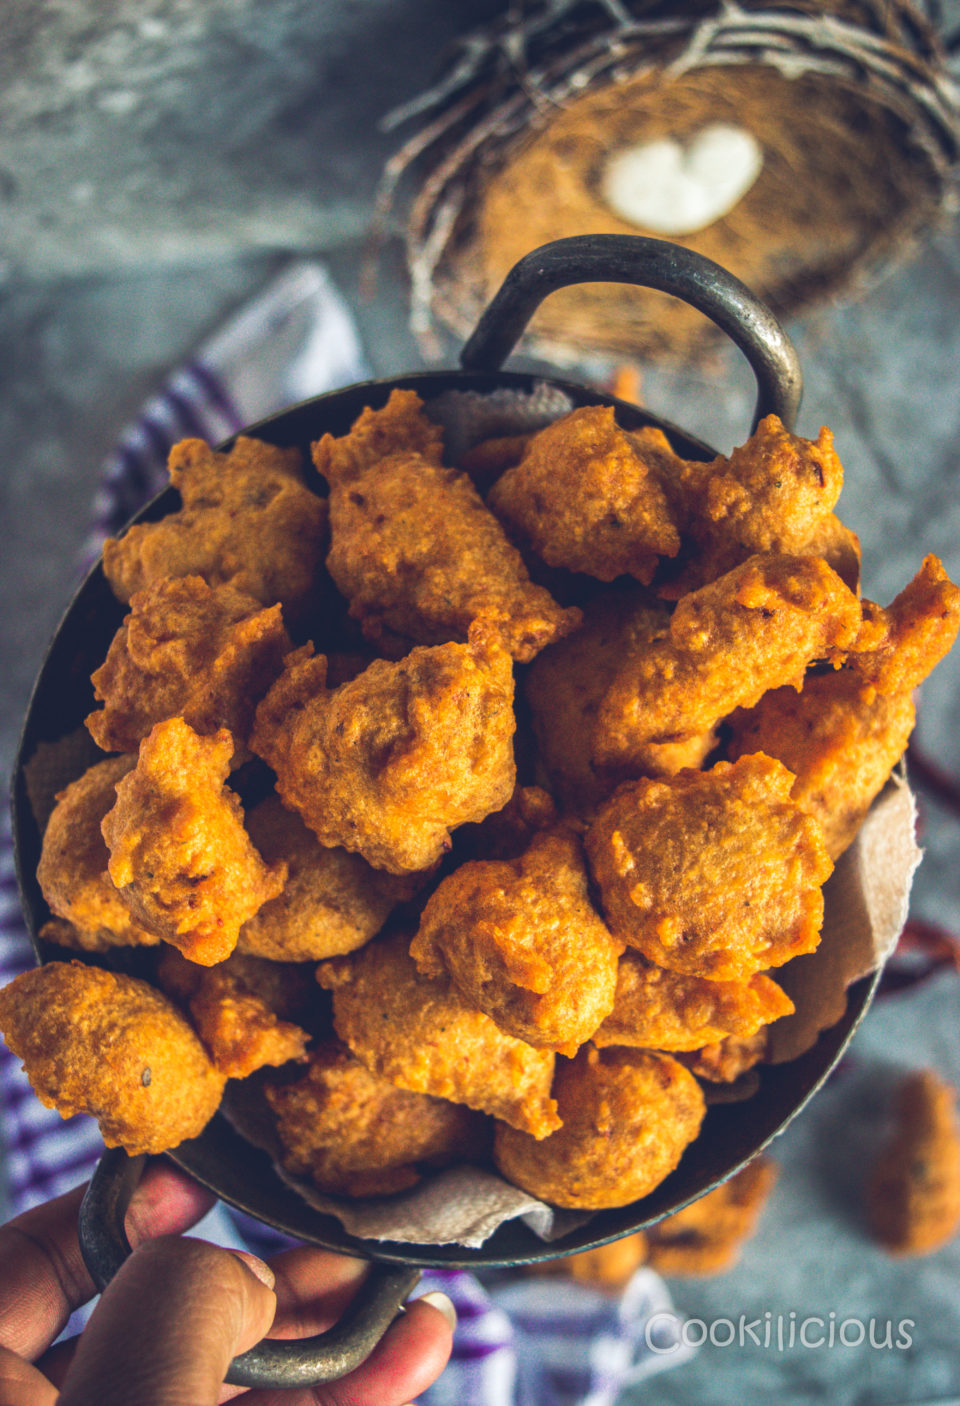 Top shot of a kadai filled with South Indian Medu Wada | Lentil Fritters